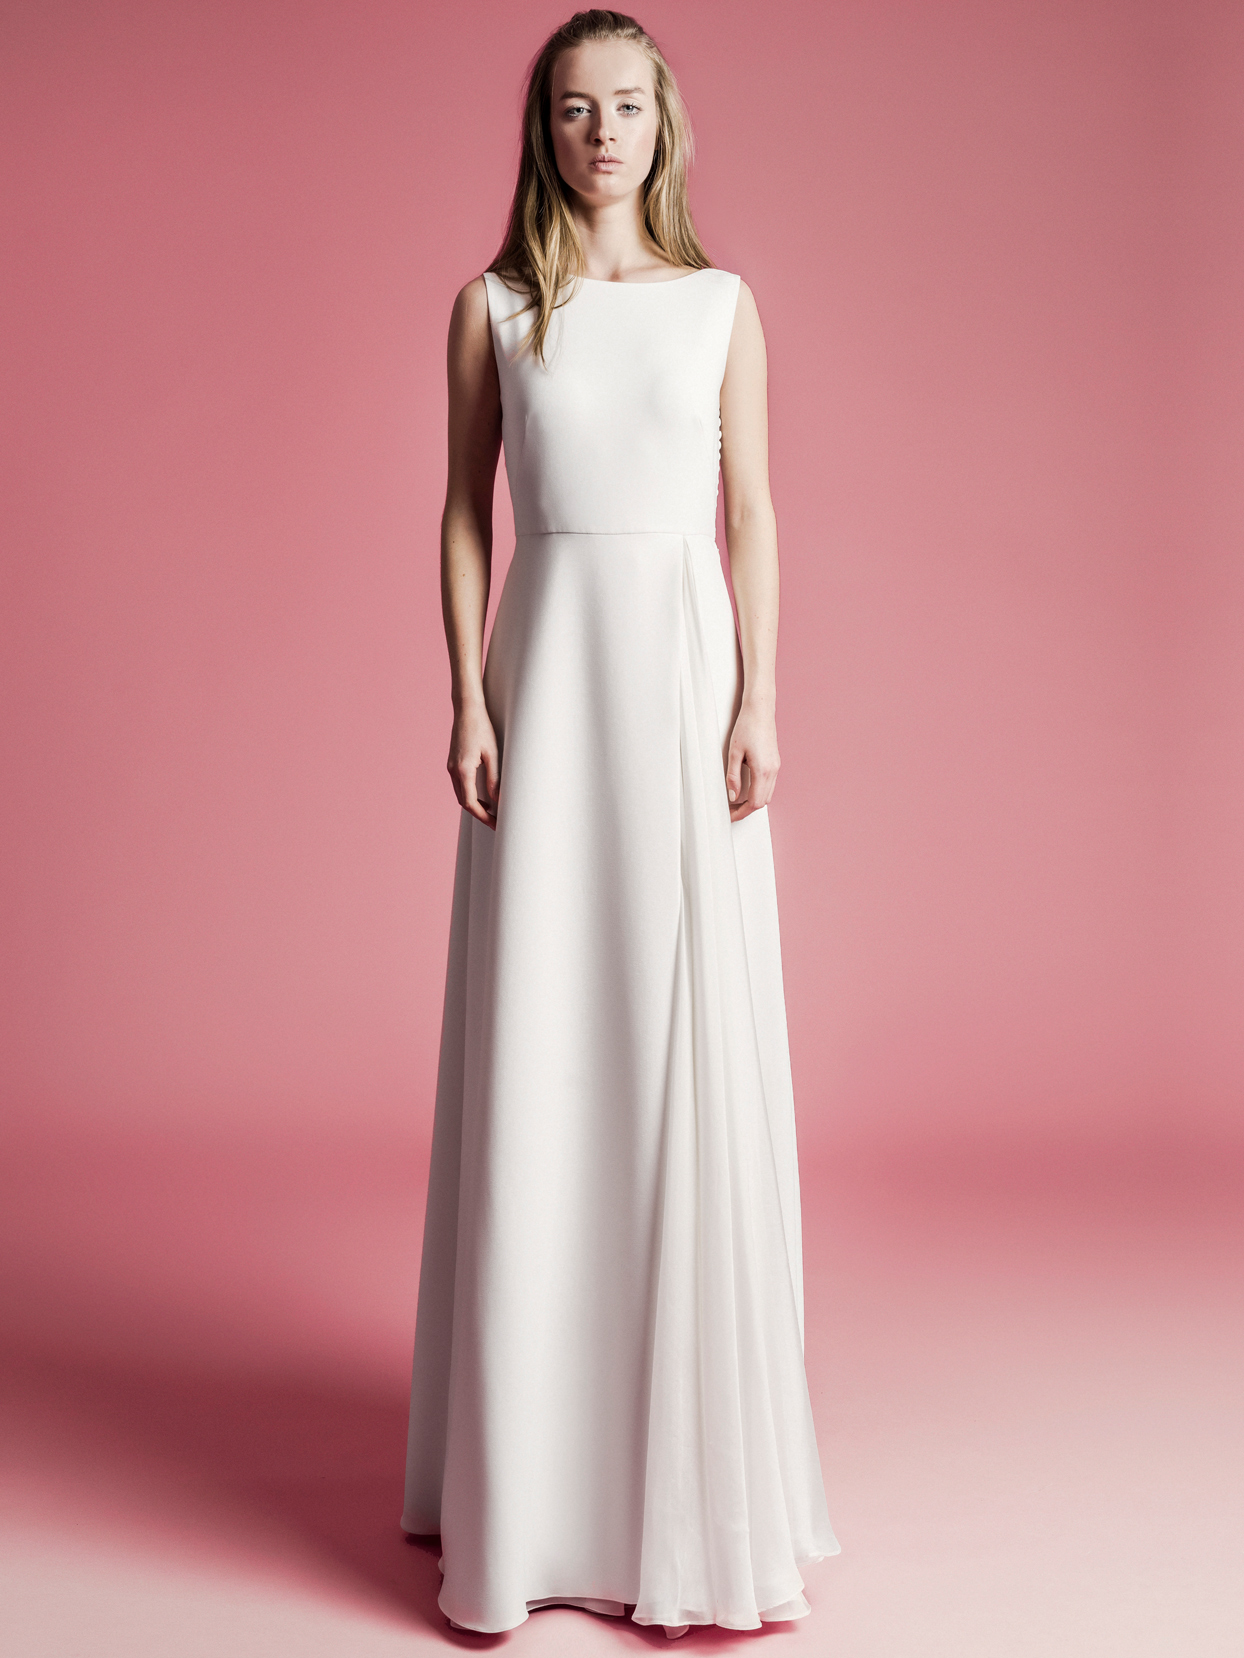 Sophie Et Voilà high neck sleeveless a-line wedding dress spring 2021